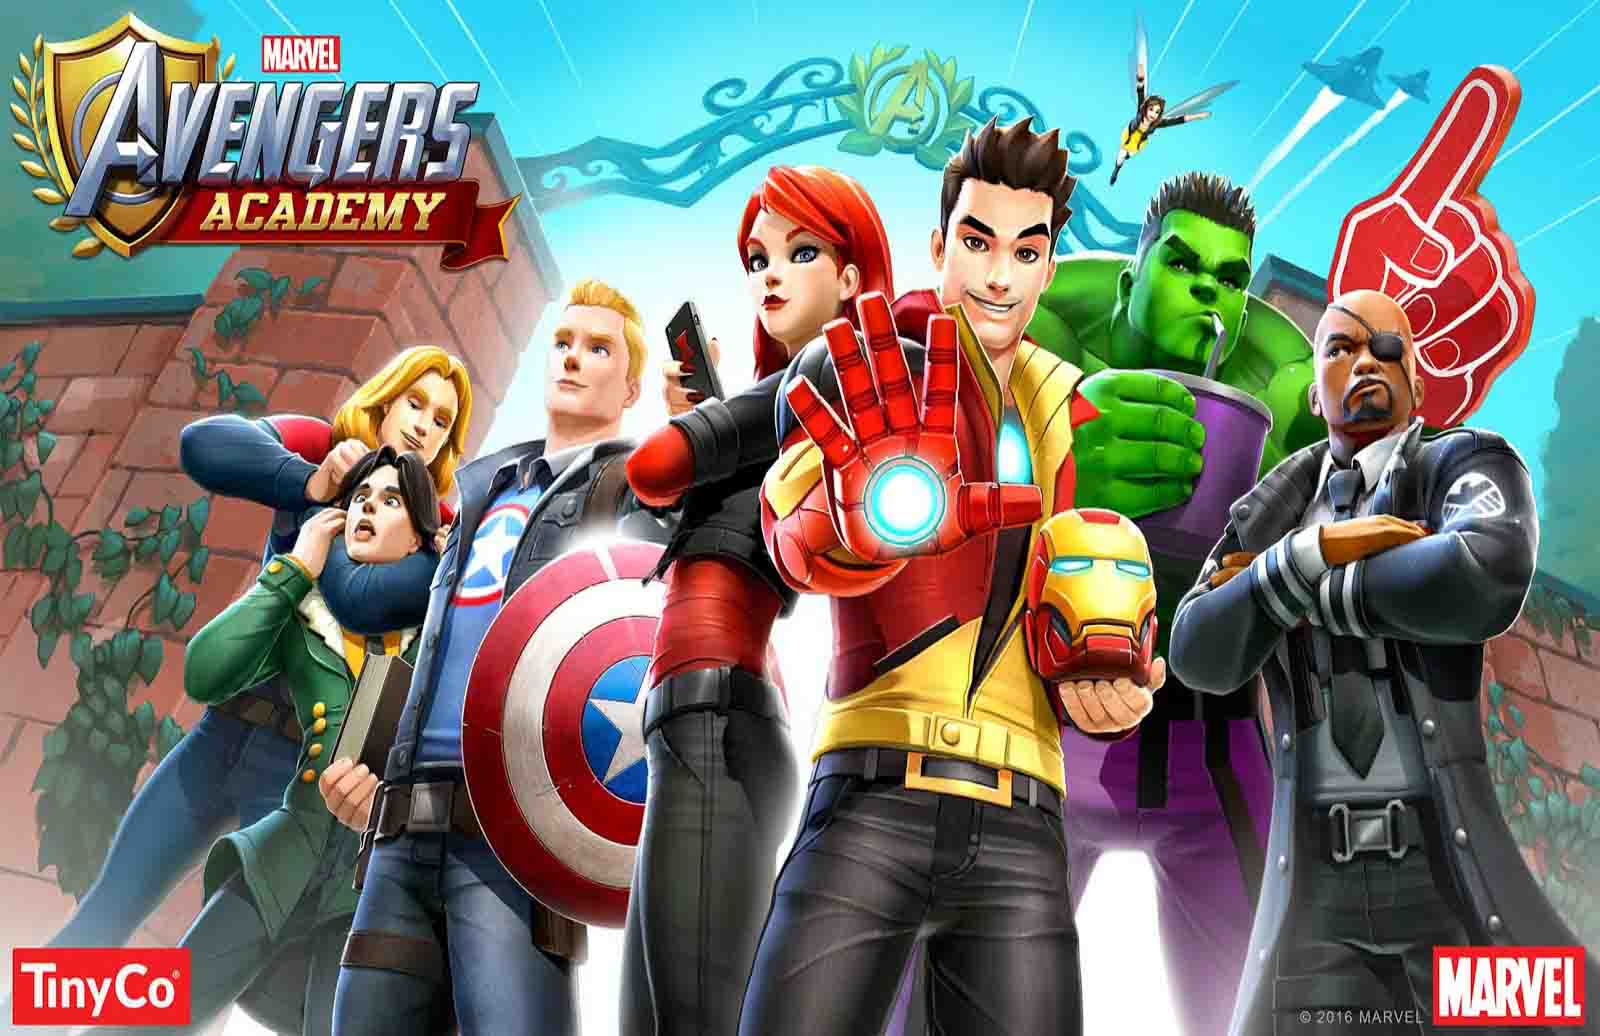 MARVEL Avengers Academy v2 15 0 APK + DATA - Android Game Review